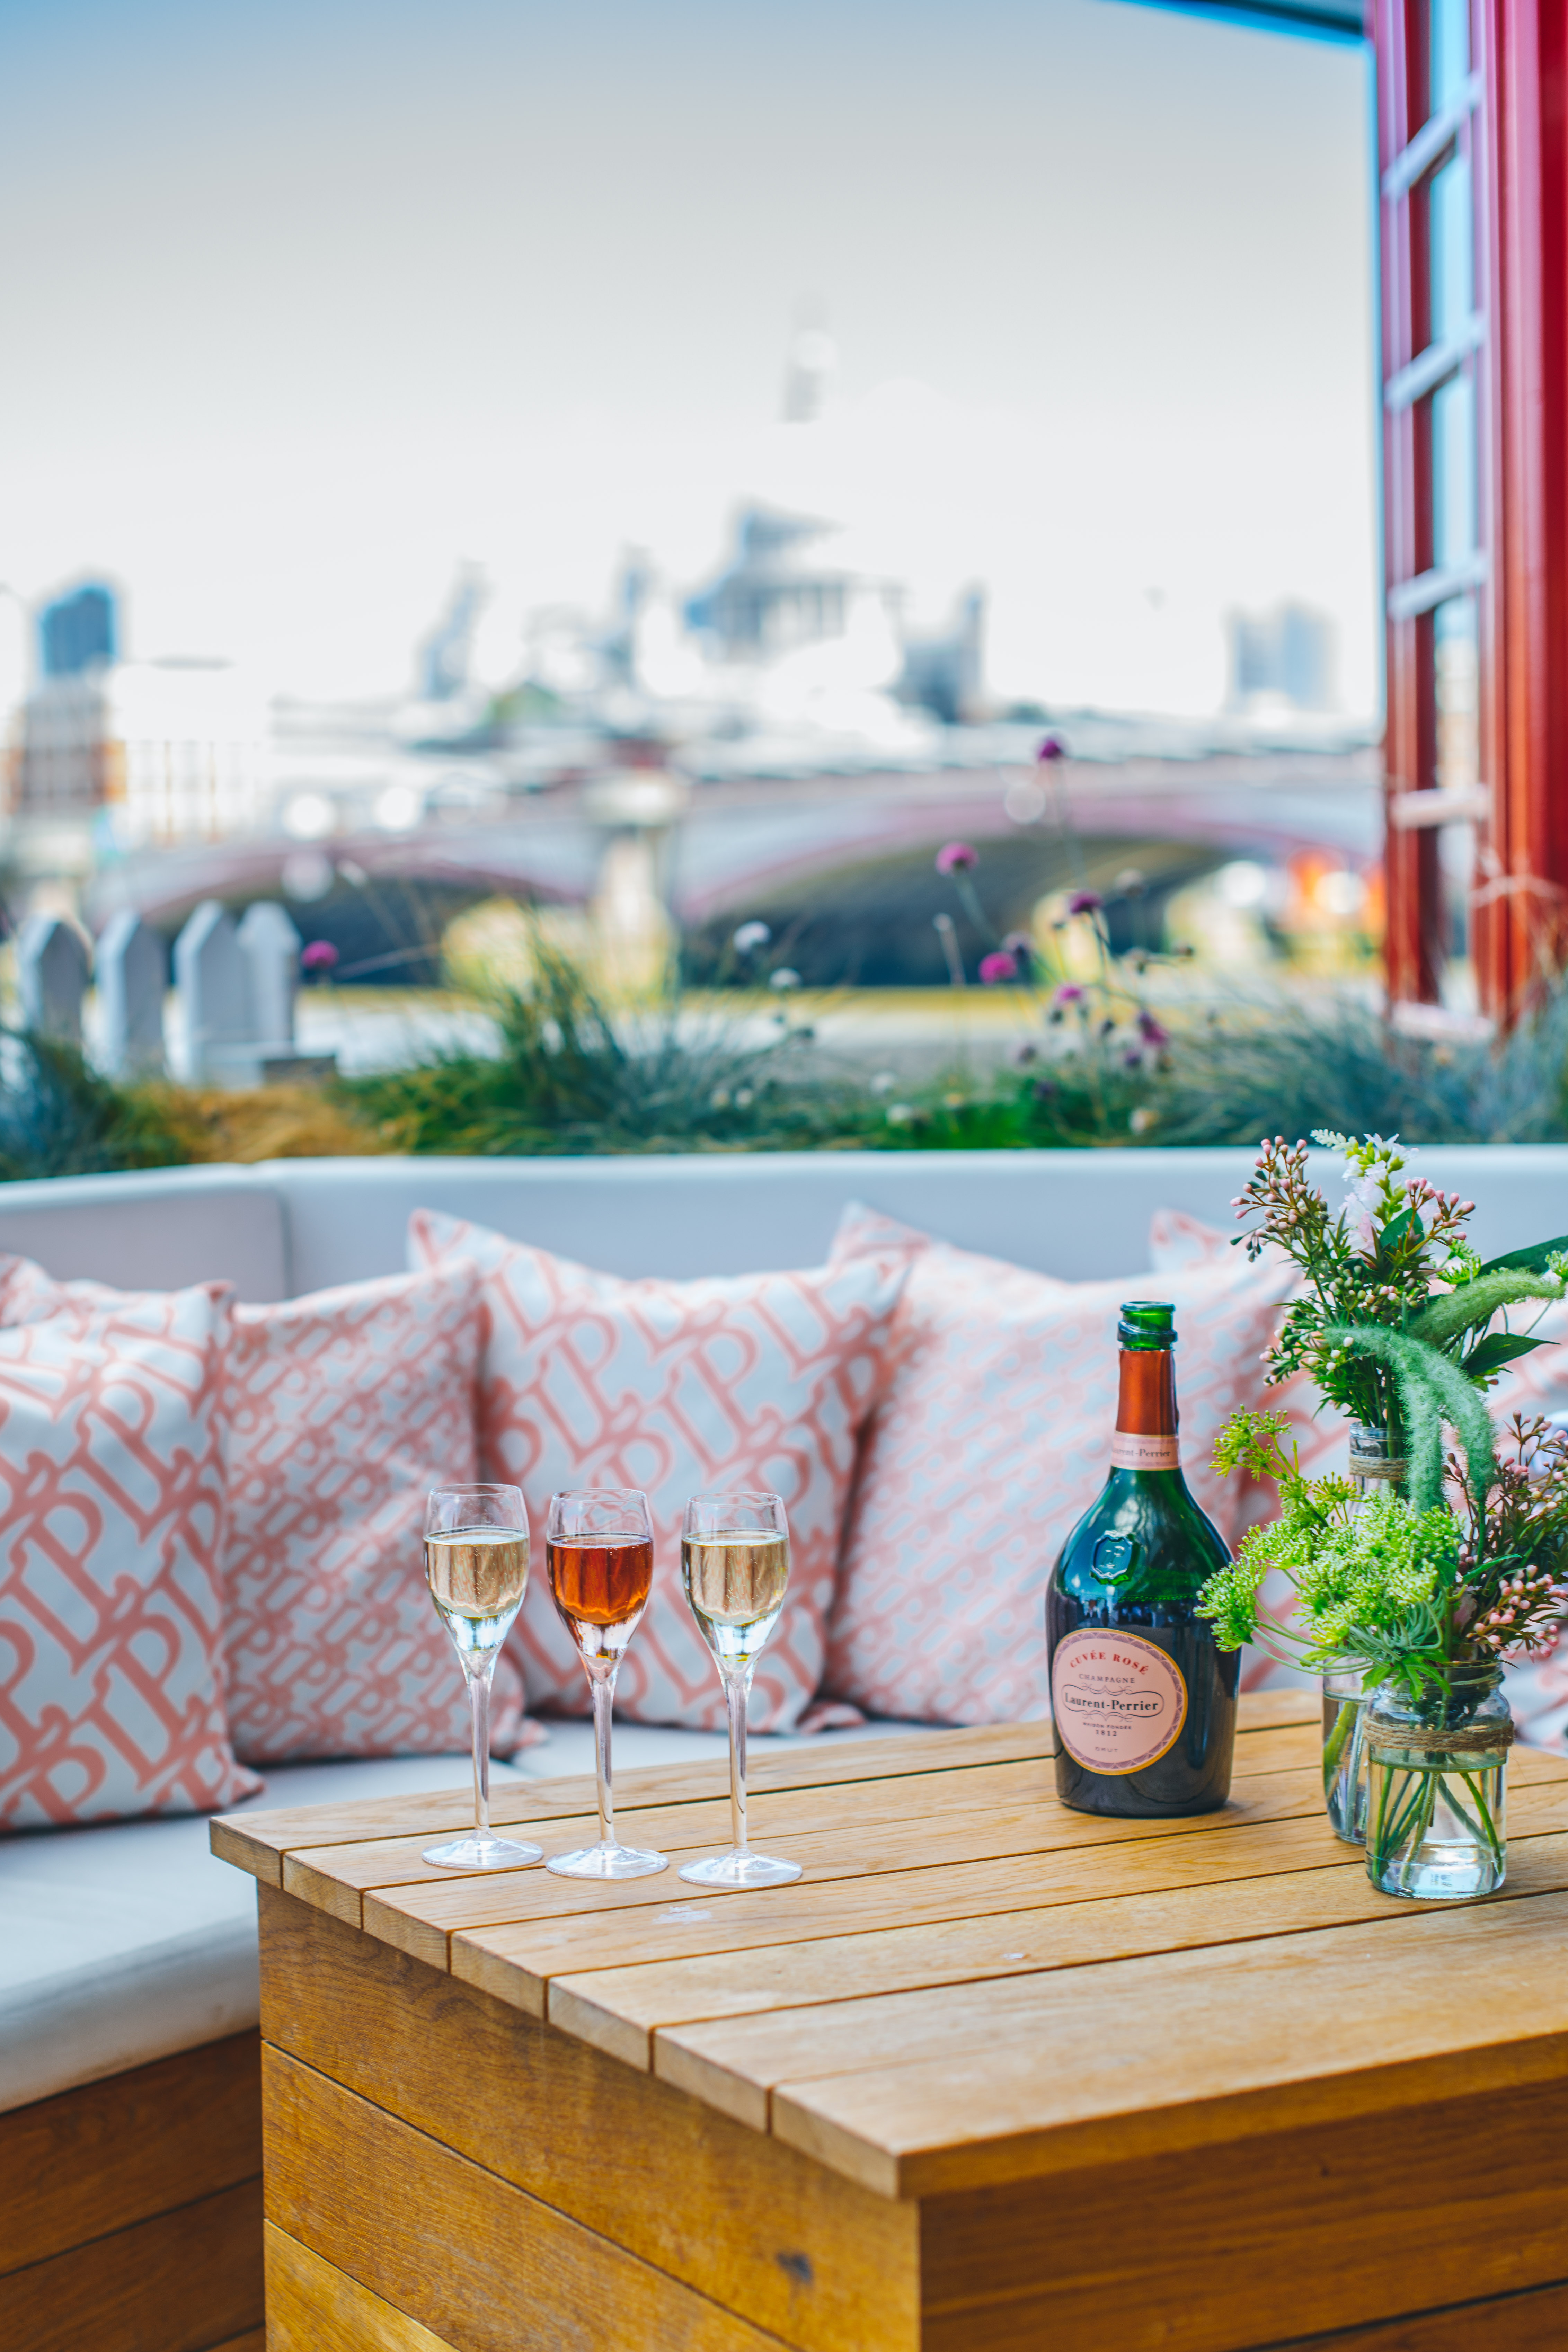 4th of July celebrations at The Mondrian, London 6